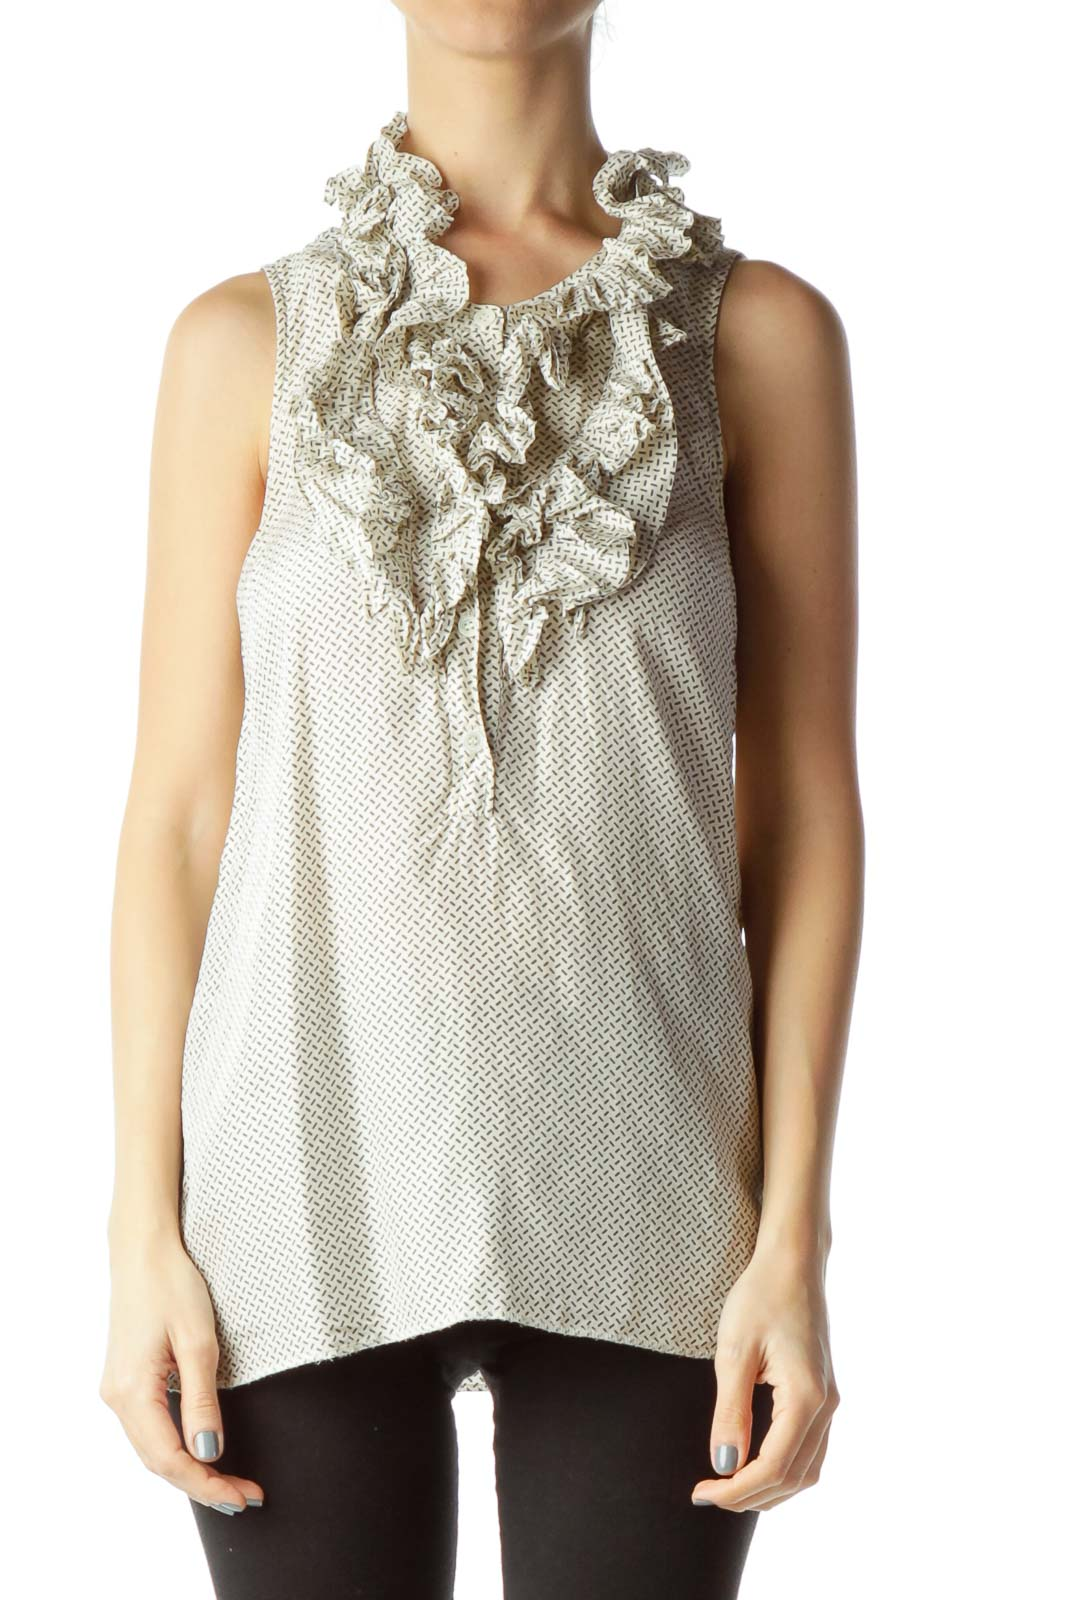 Beige Printed Sleeveless Blouse with Ruffles